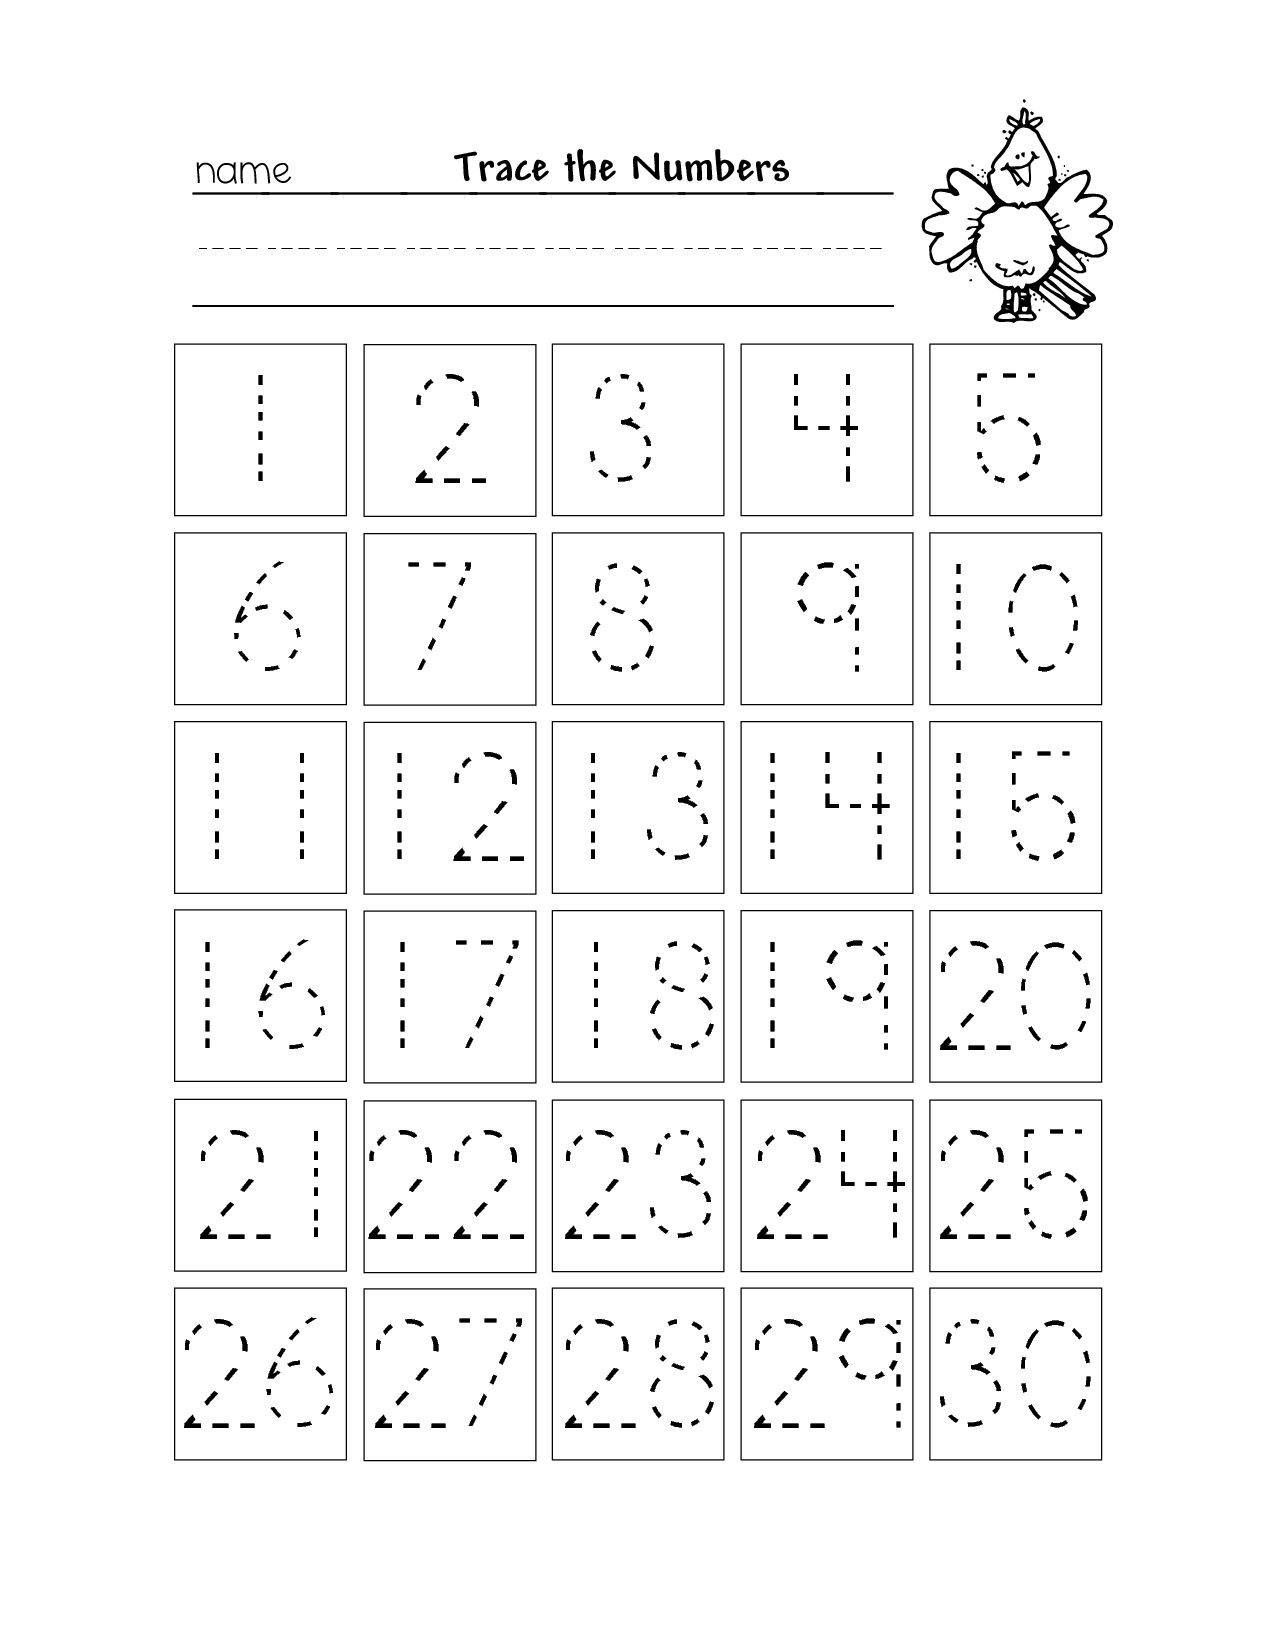 Printables Preschool Number Tracing Worksheets 1-20 1000 images about number tracing on pinterest kids numbers activities and words